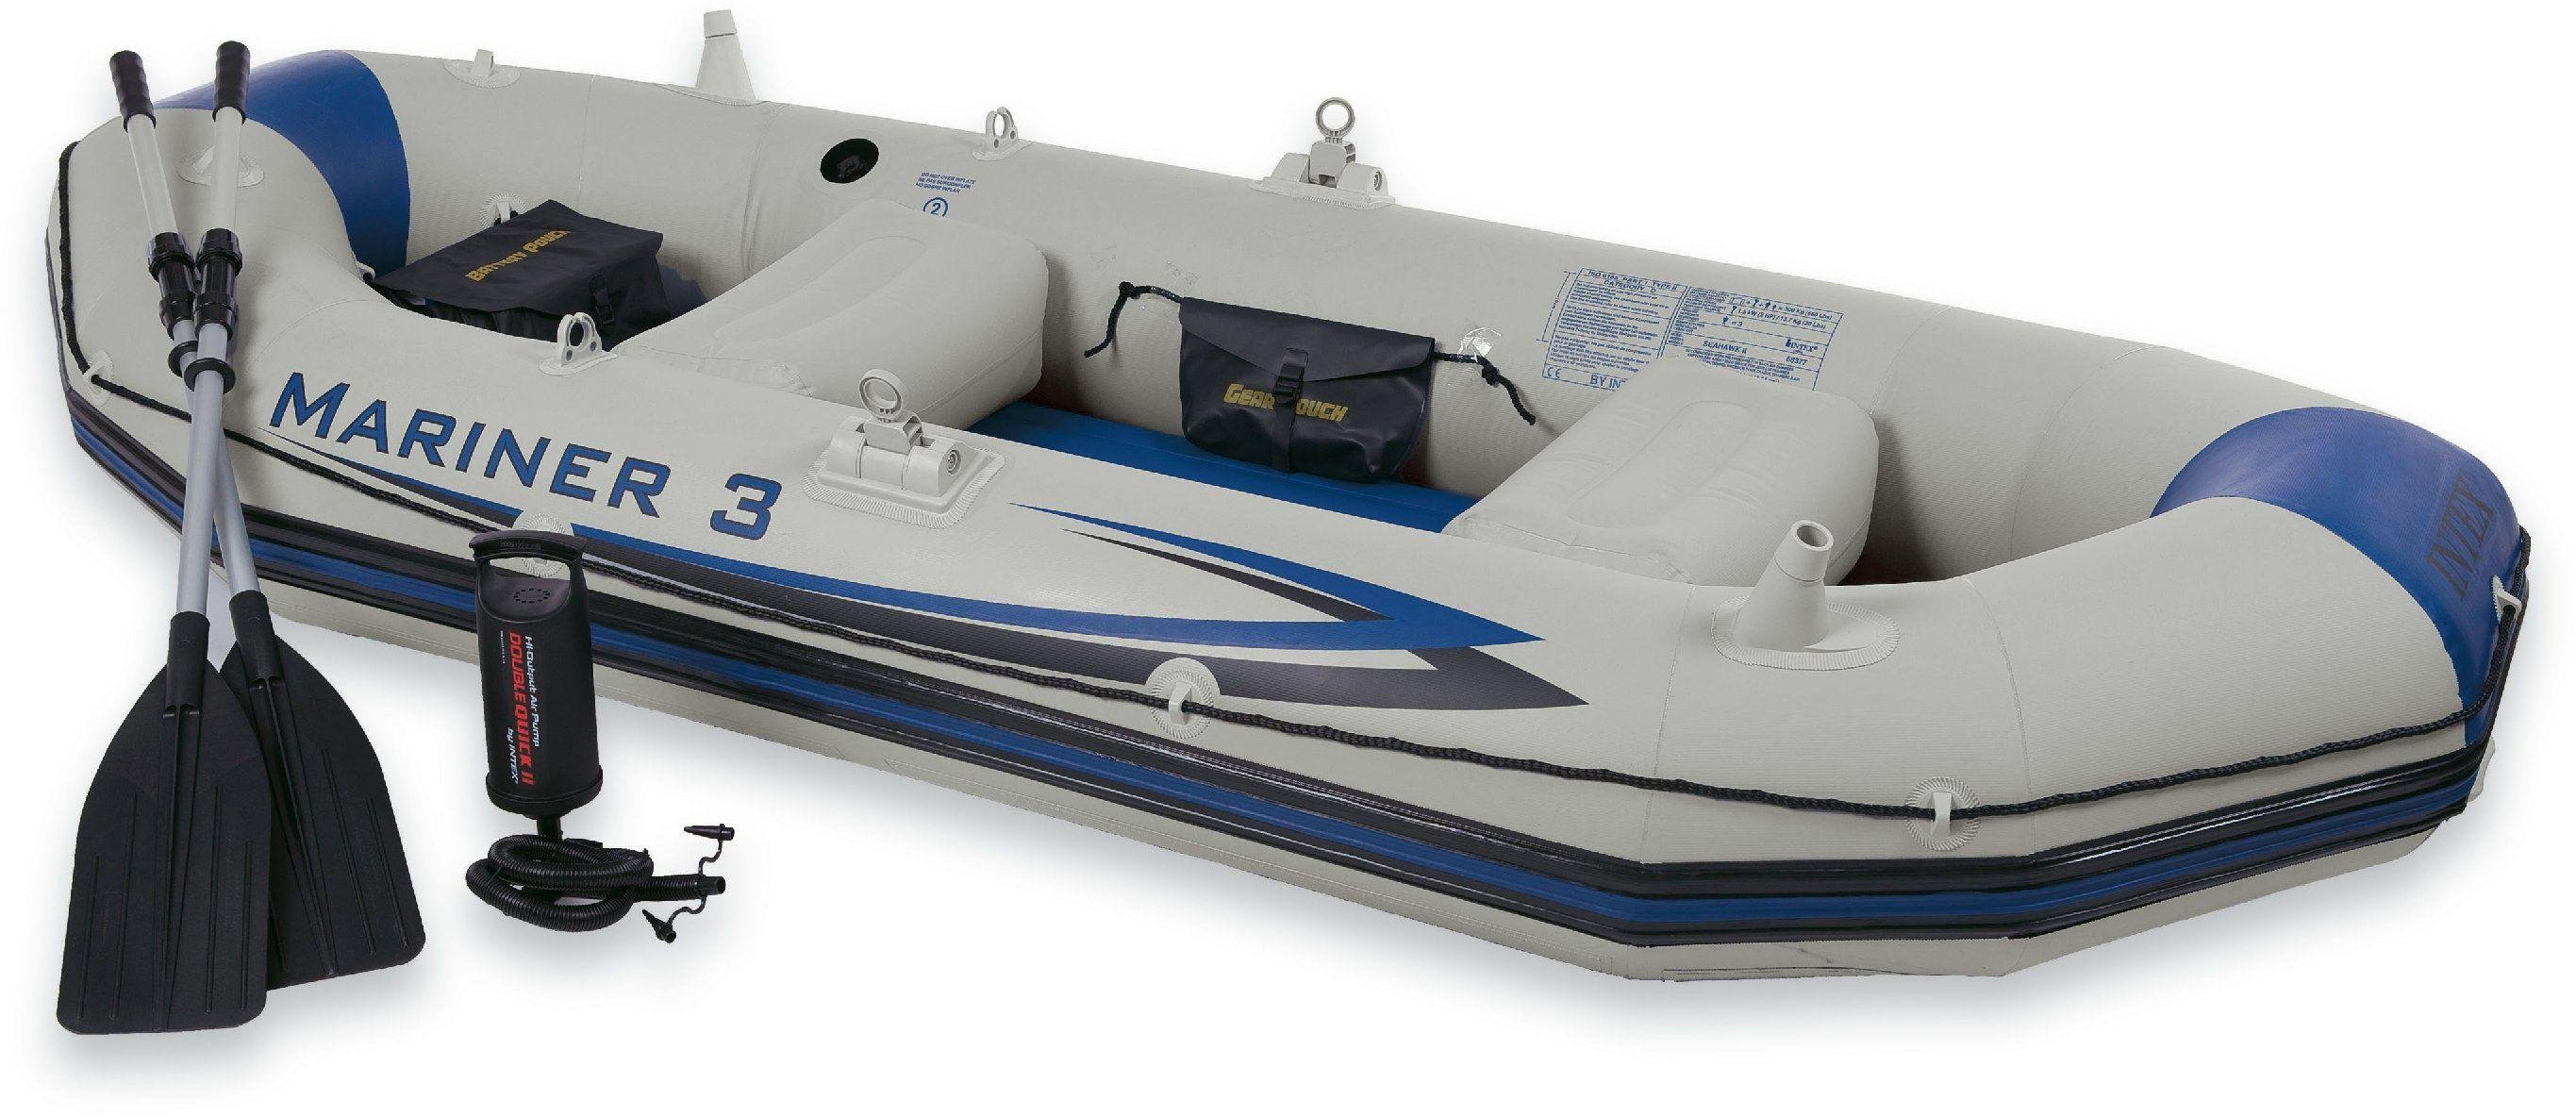 Intex - Mariner 3 Boat Set - Grey and Blue lowest price